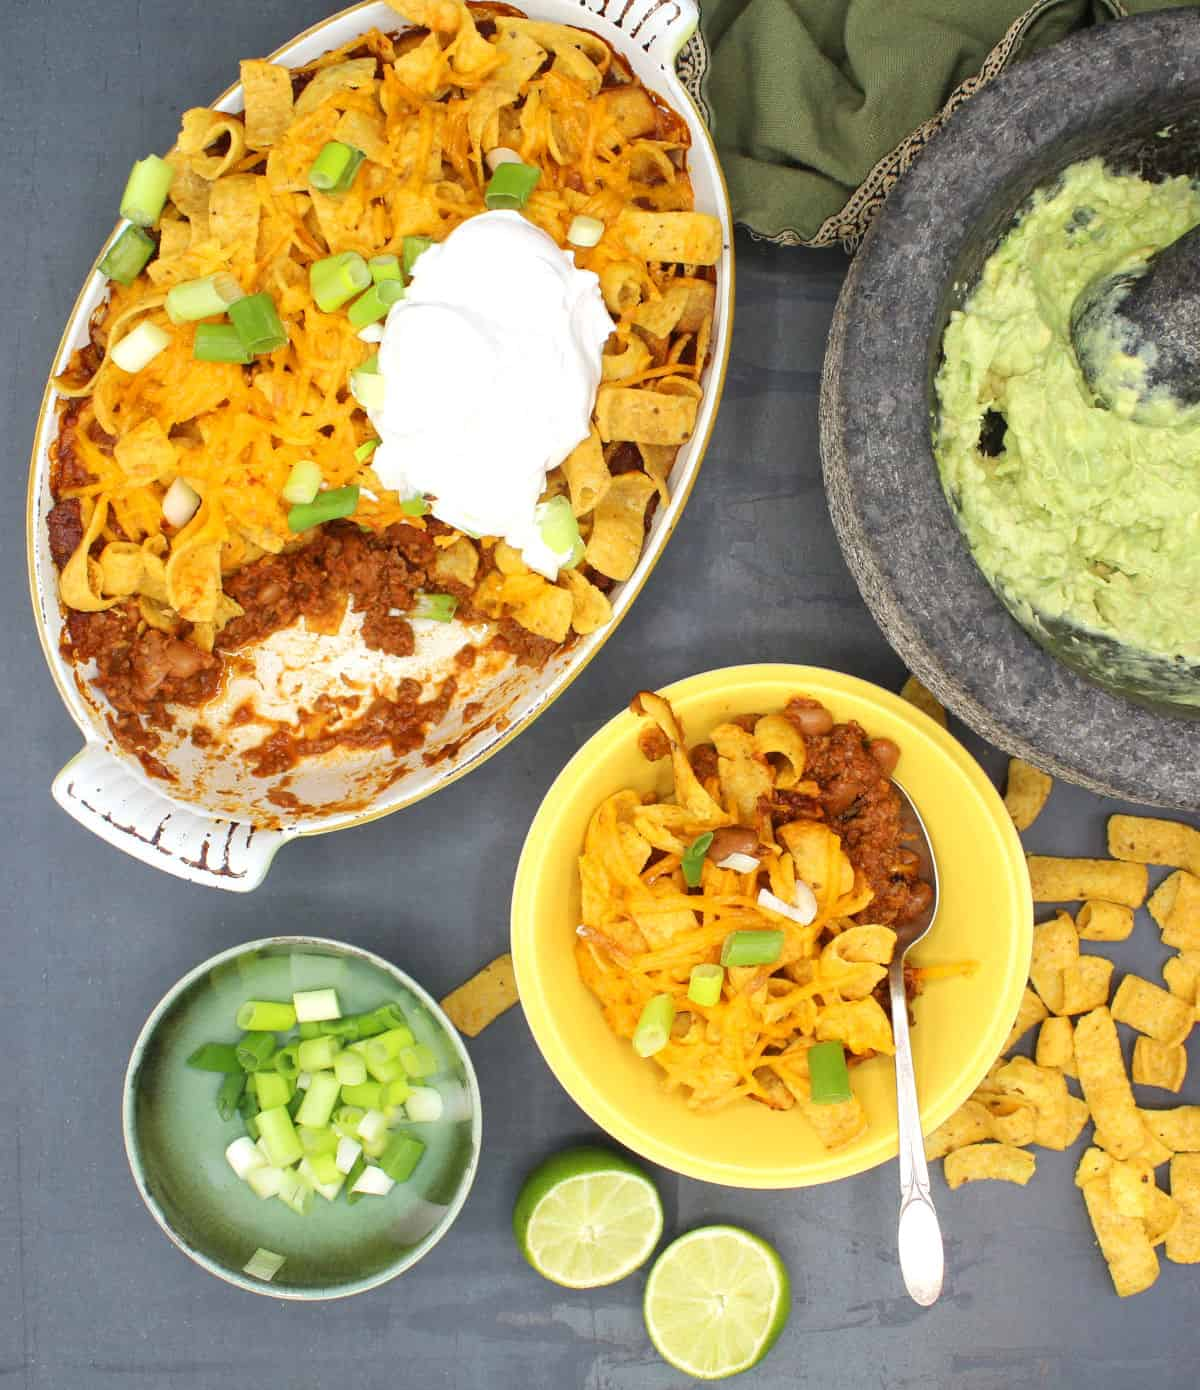 Vegan Frito pie in baking dish and bowl with vegan sour cream, scallions and guacamole.